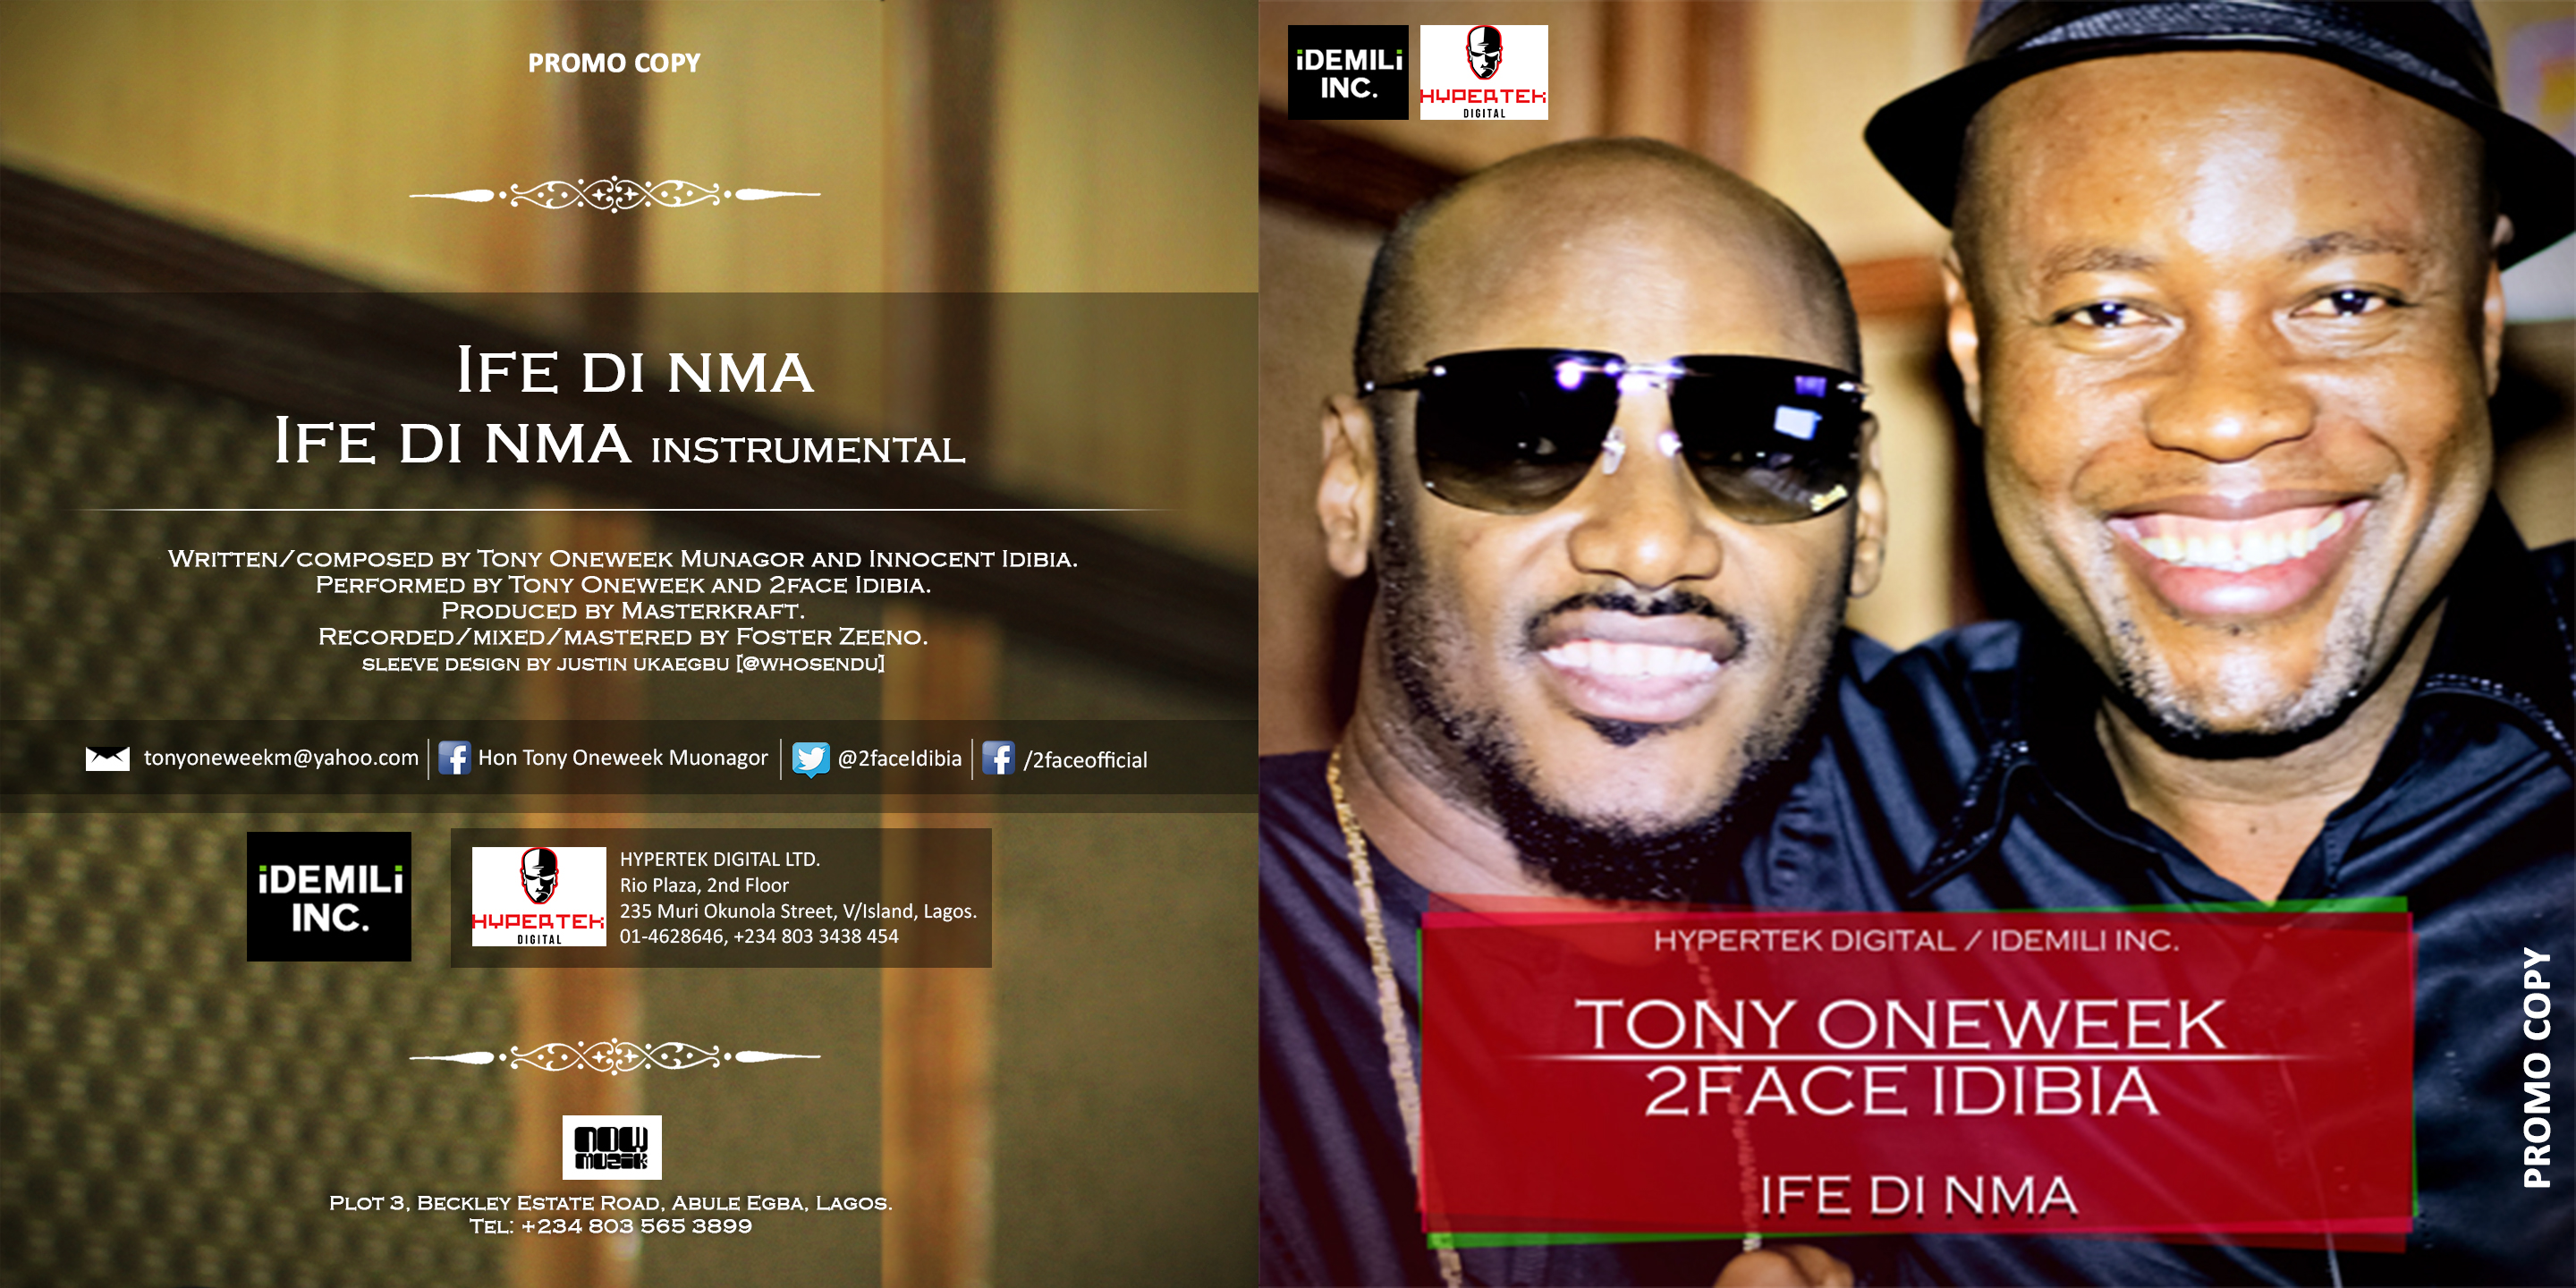 ife di nma by 2face